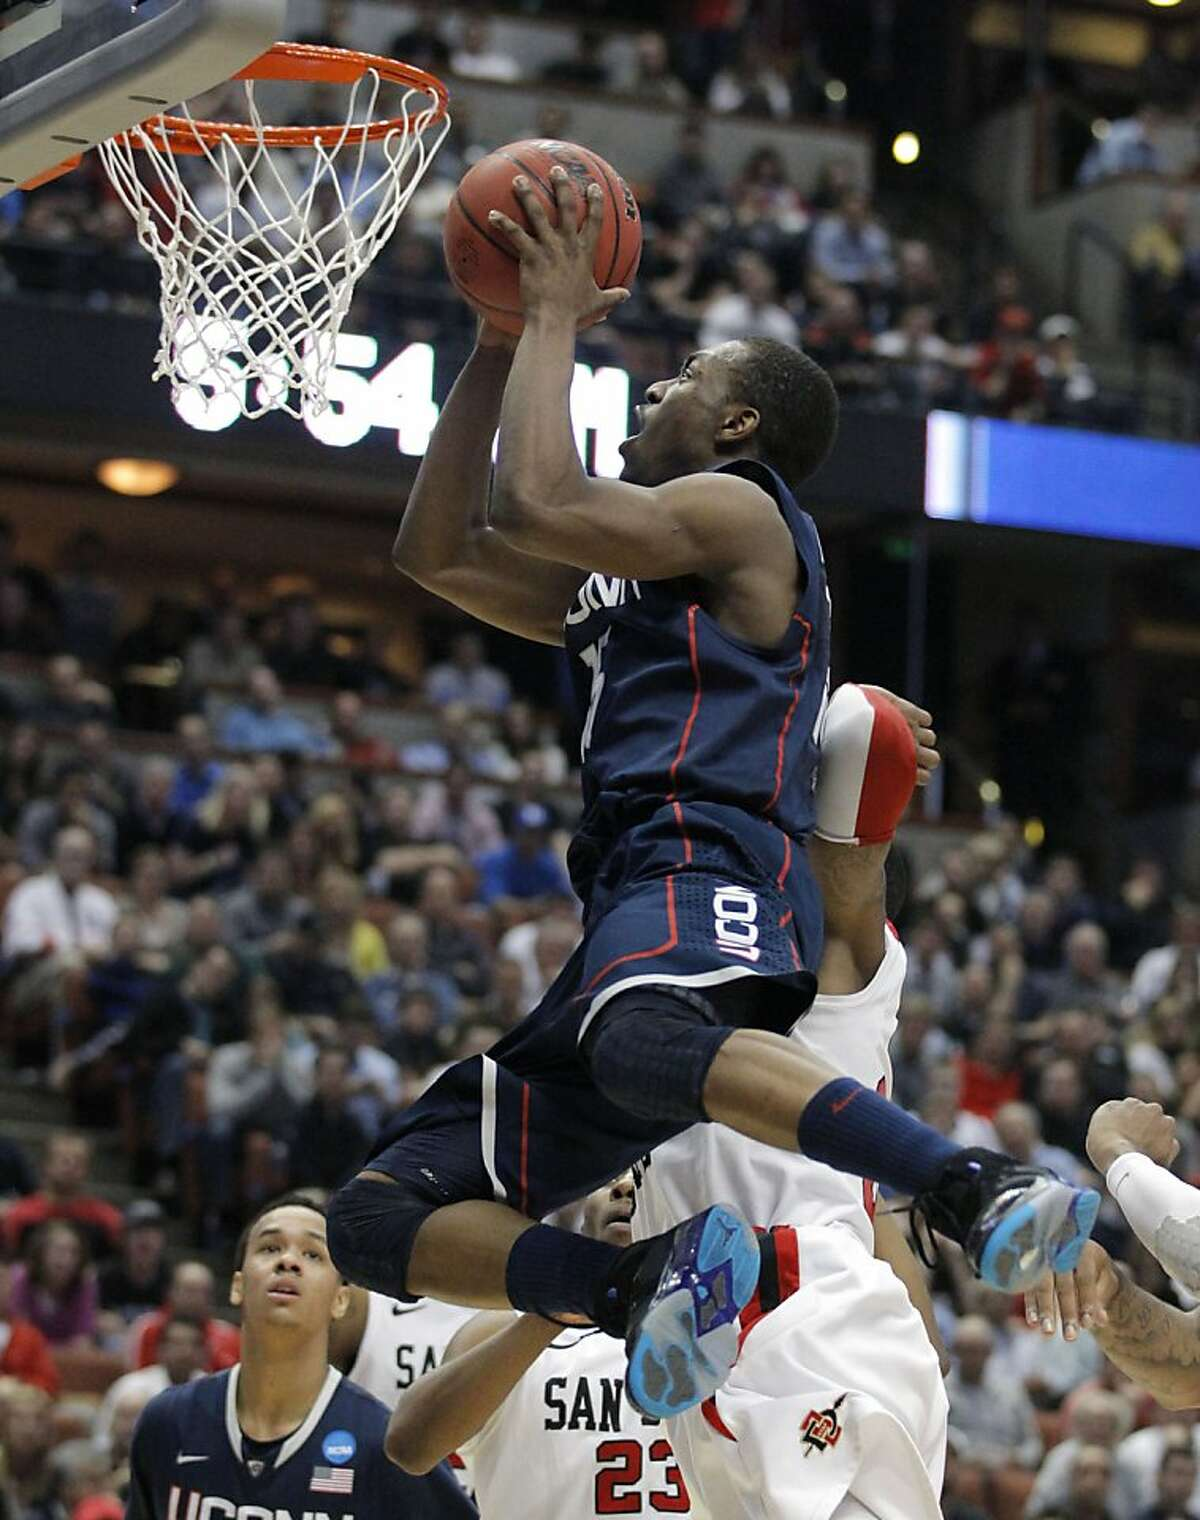 Connecticut's Kemba Walker (15) drives against San Diego State during the second half of a West regional semifinal in the NCAA college basketball tournament Thursday, March 24, 2011, in Anaheim, Calif.